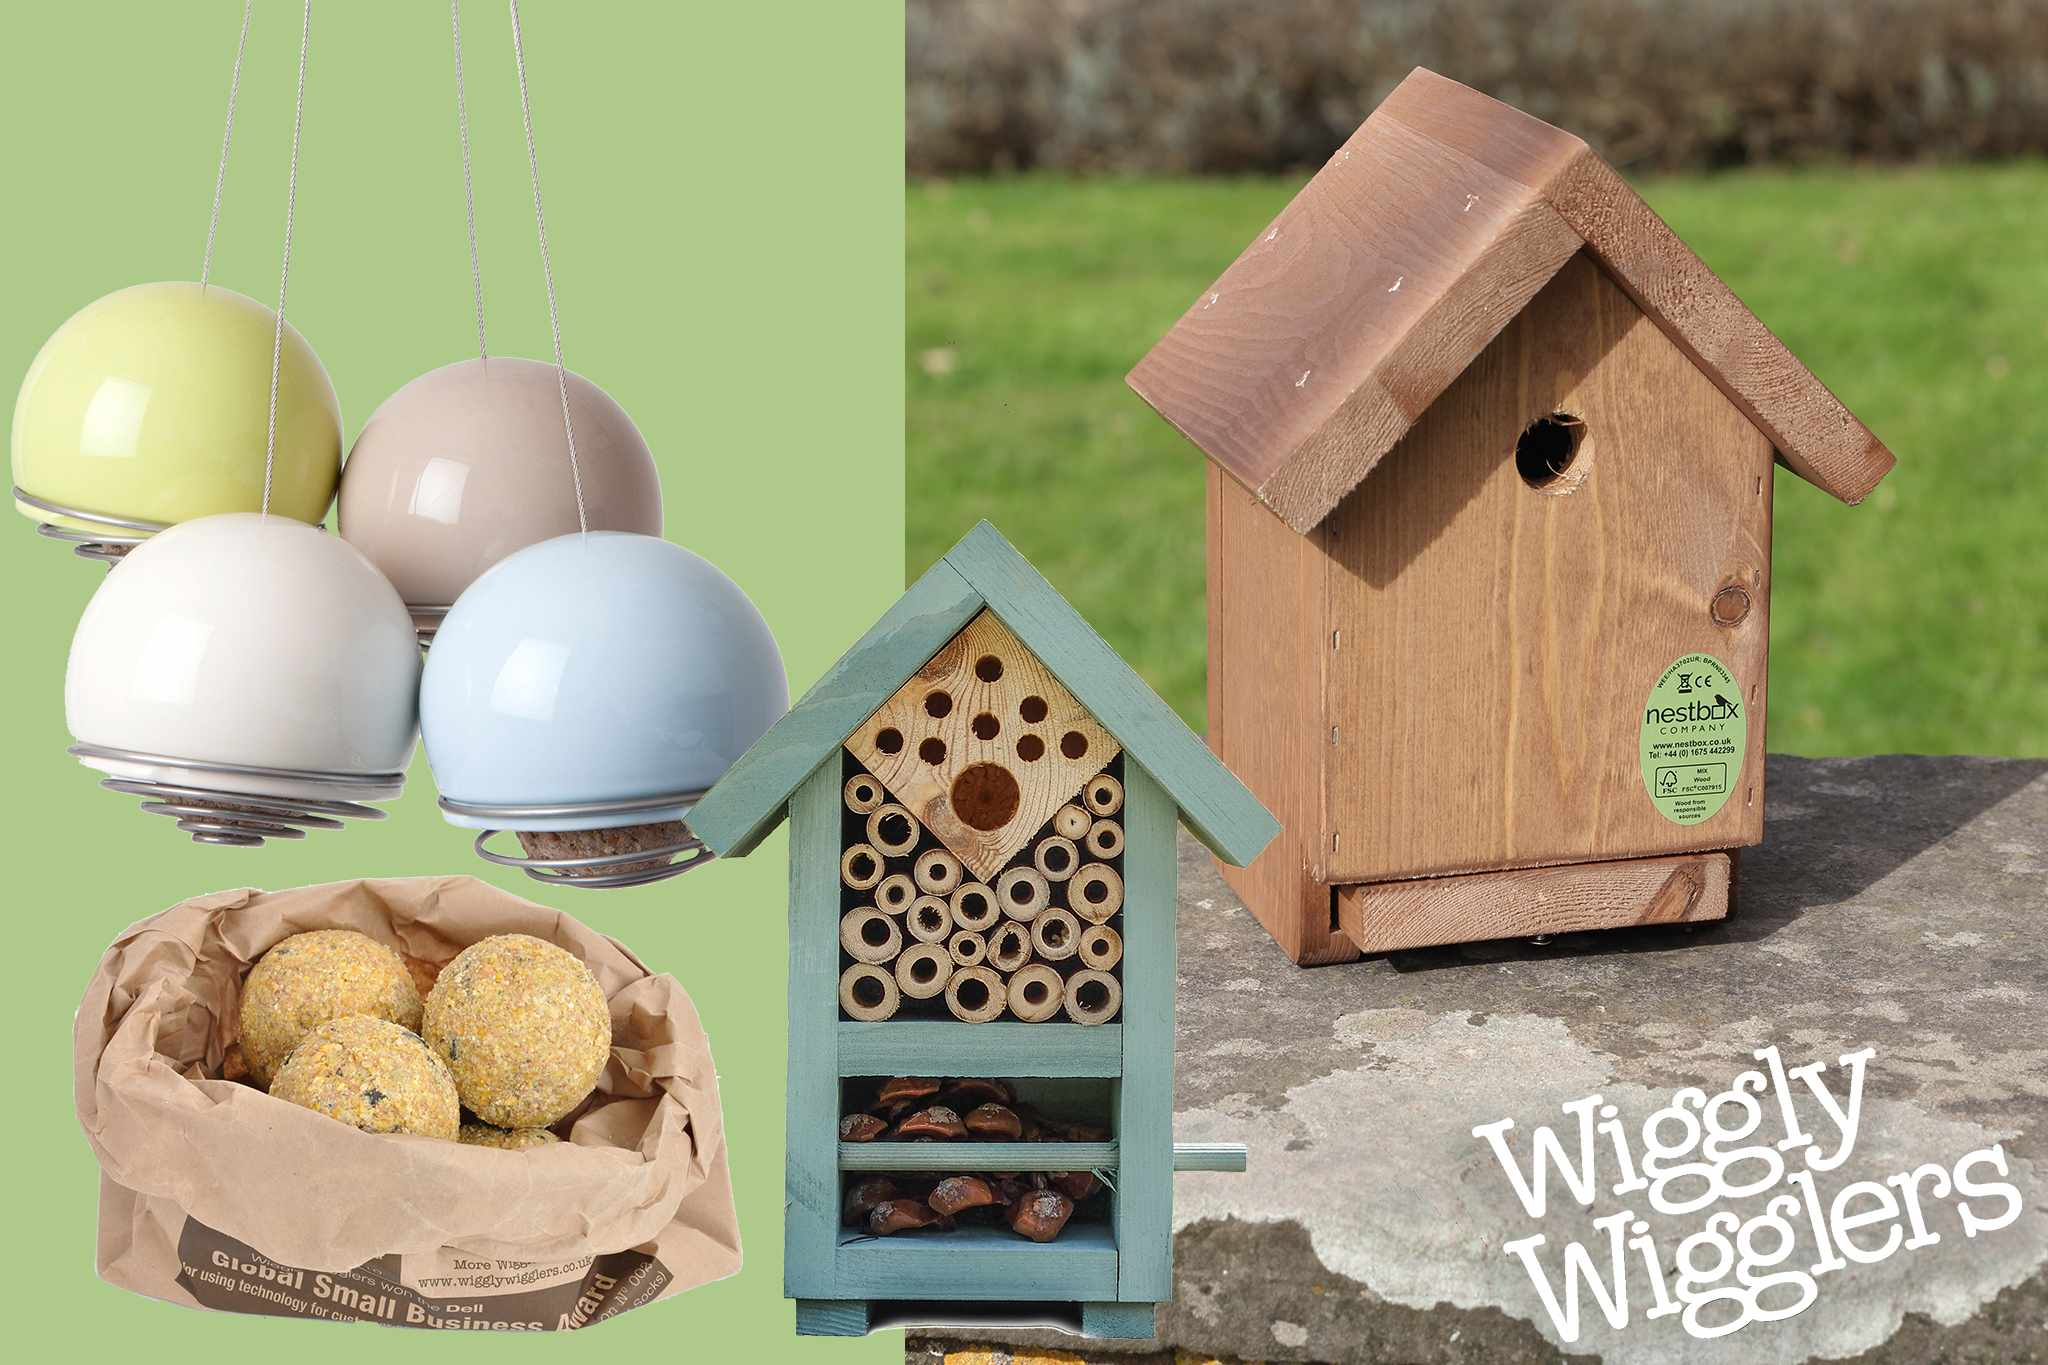 Subscriber Club exclusive: Wildlife products bundle from Wiggly Wigglers